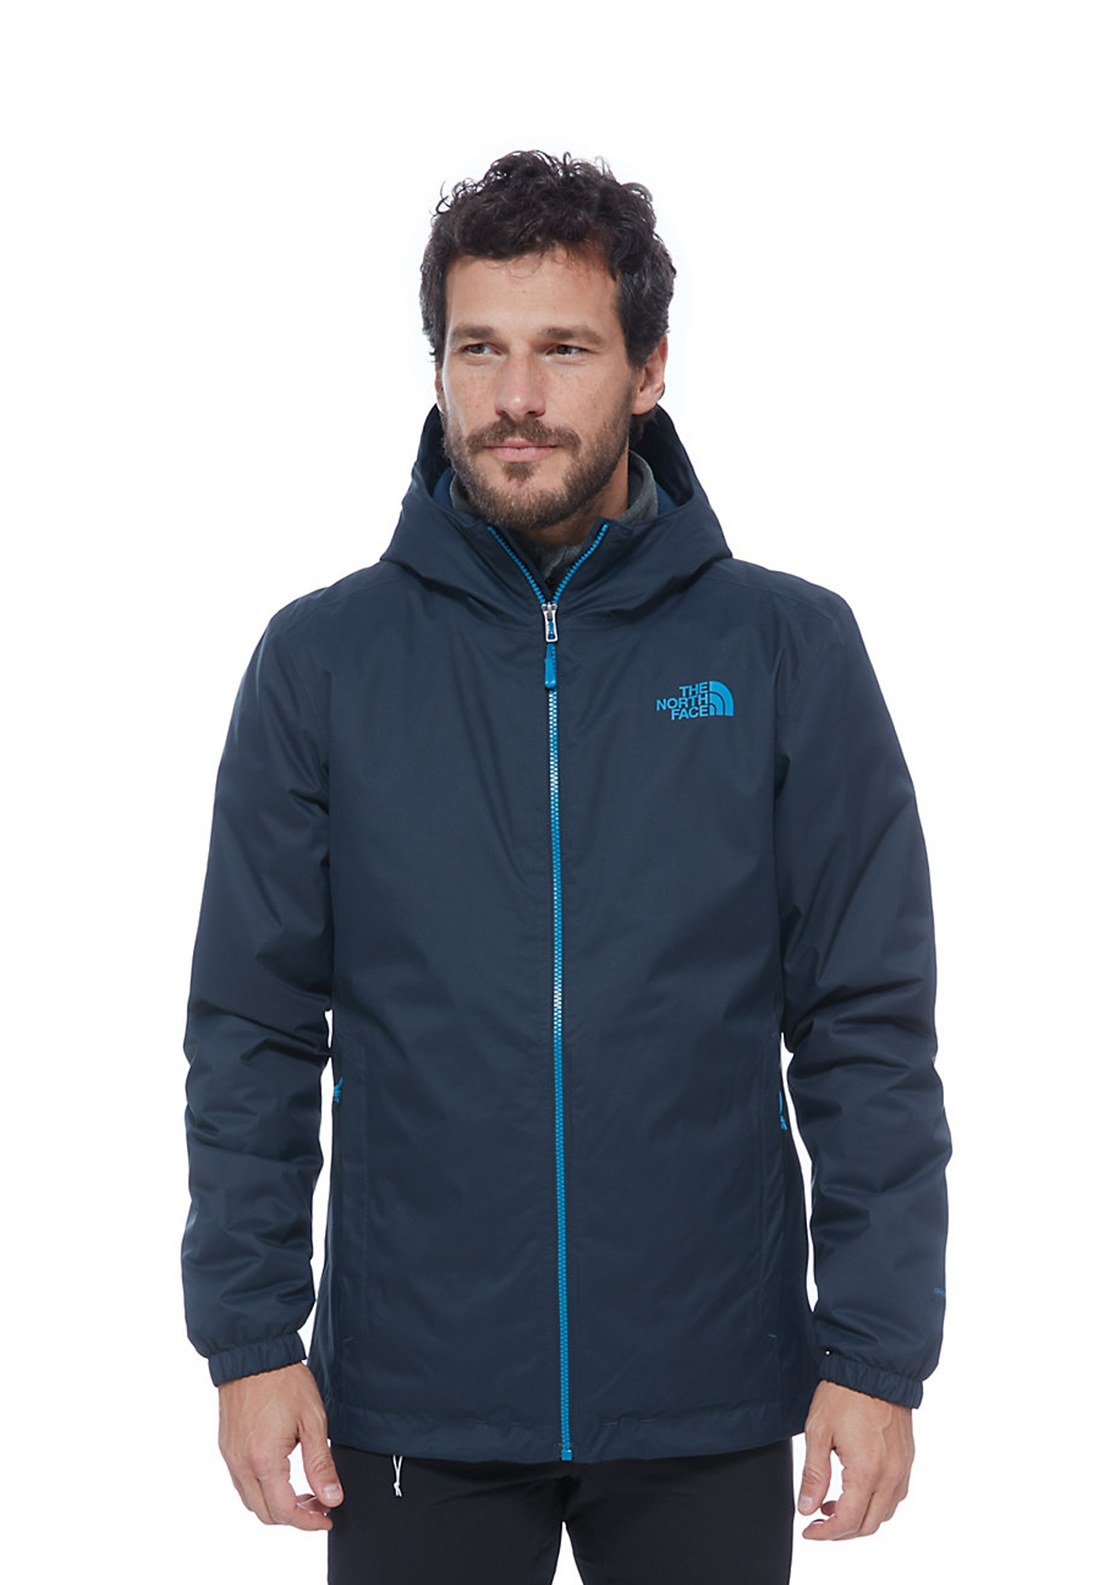 The North Face Mens Quest Hooded Jacket, Navy